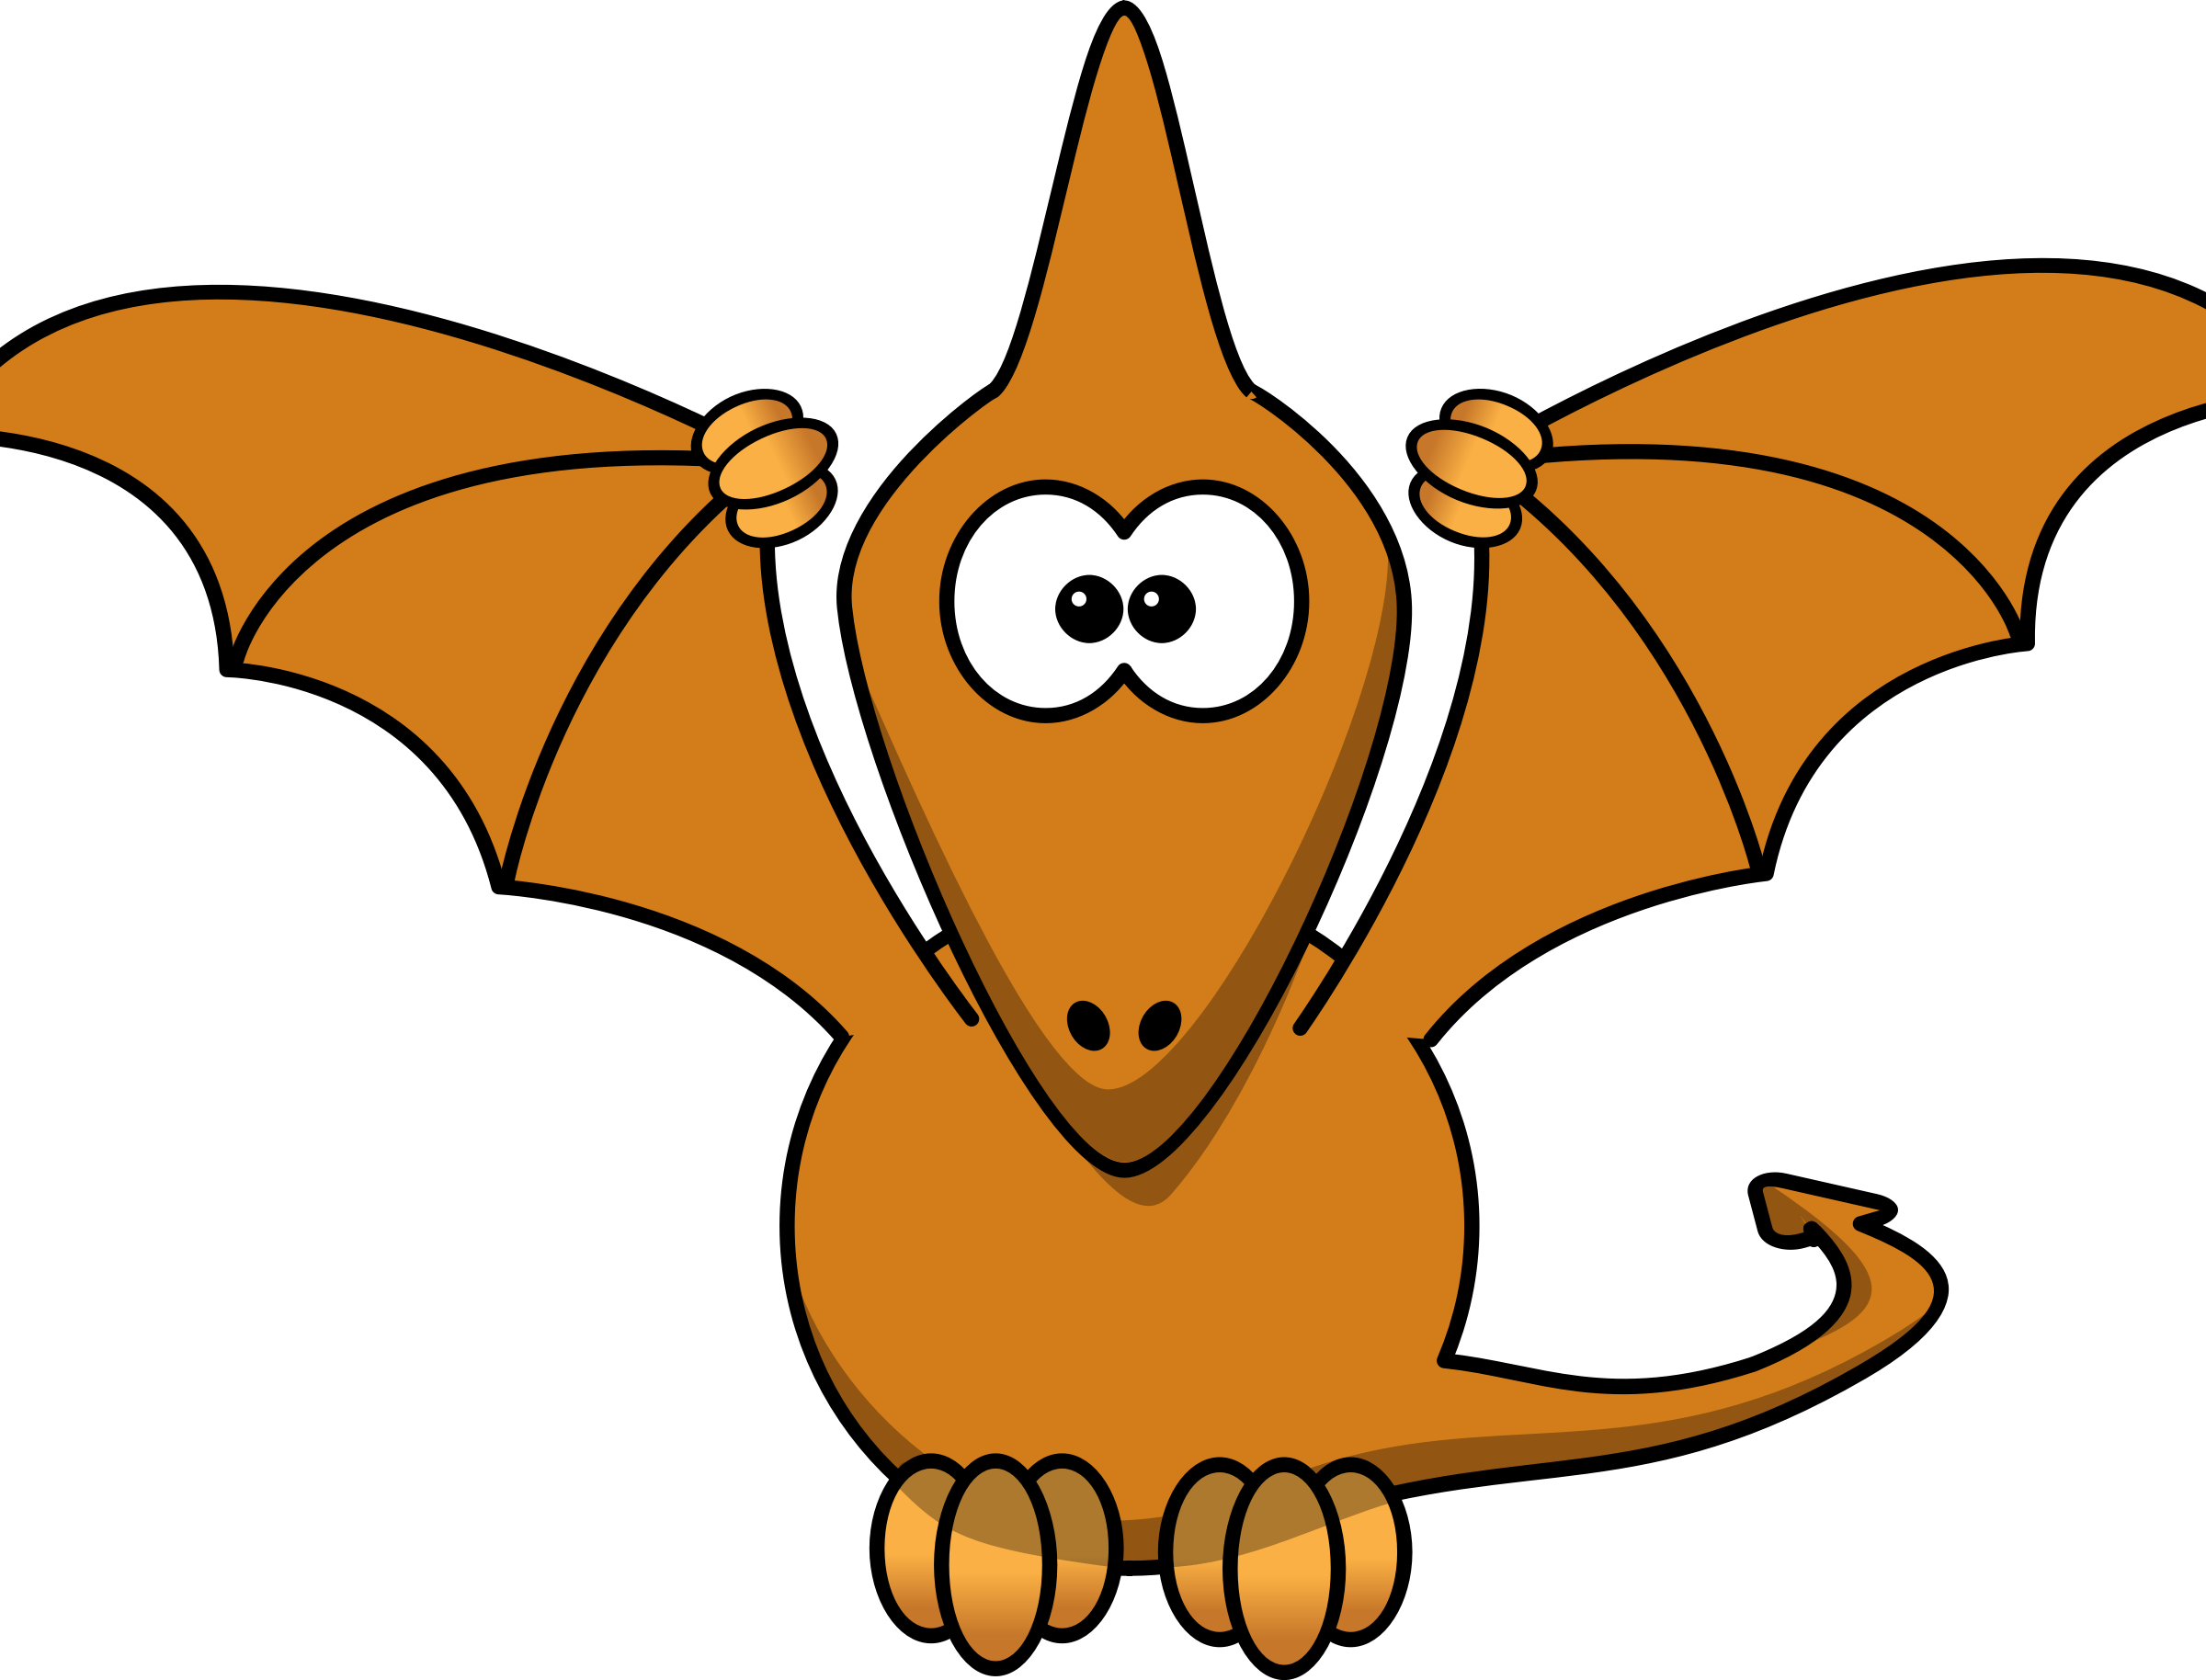 Cartoon pterodactyl with upraised wings by anarres